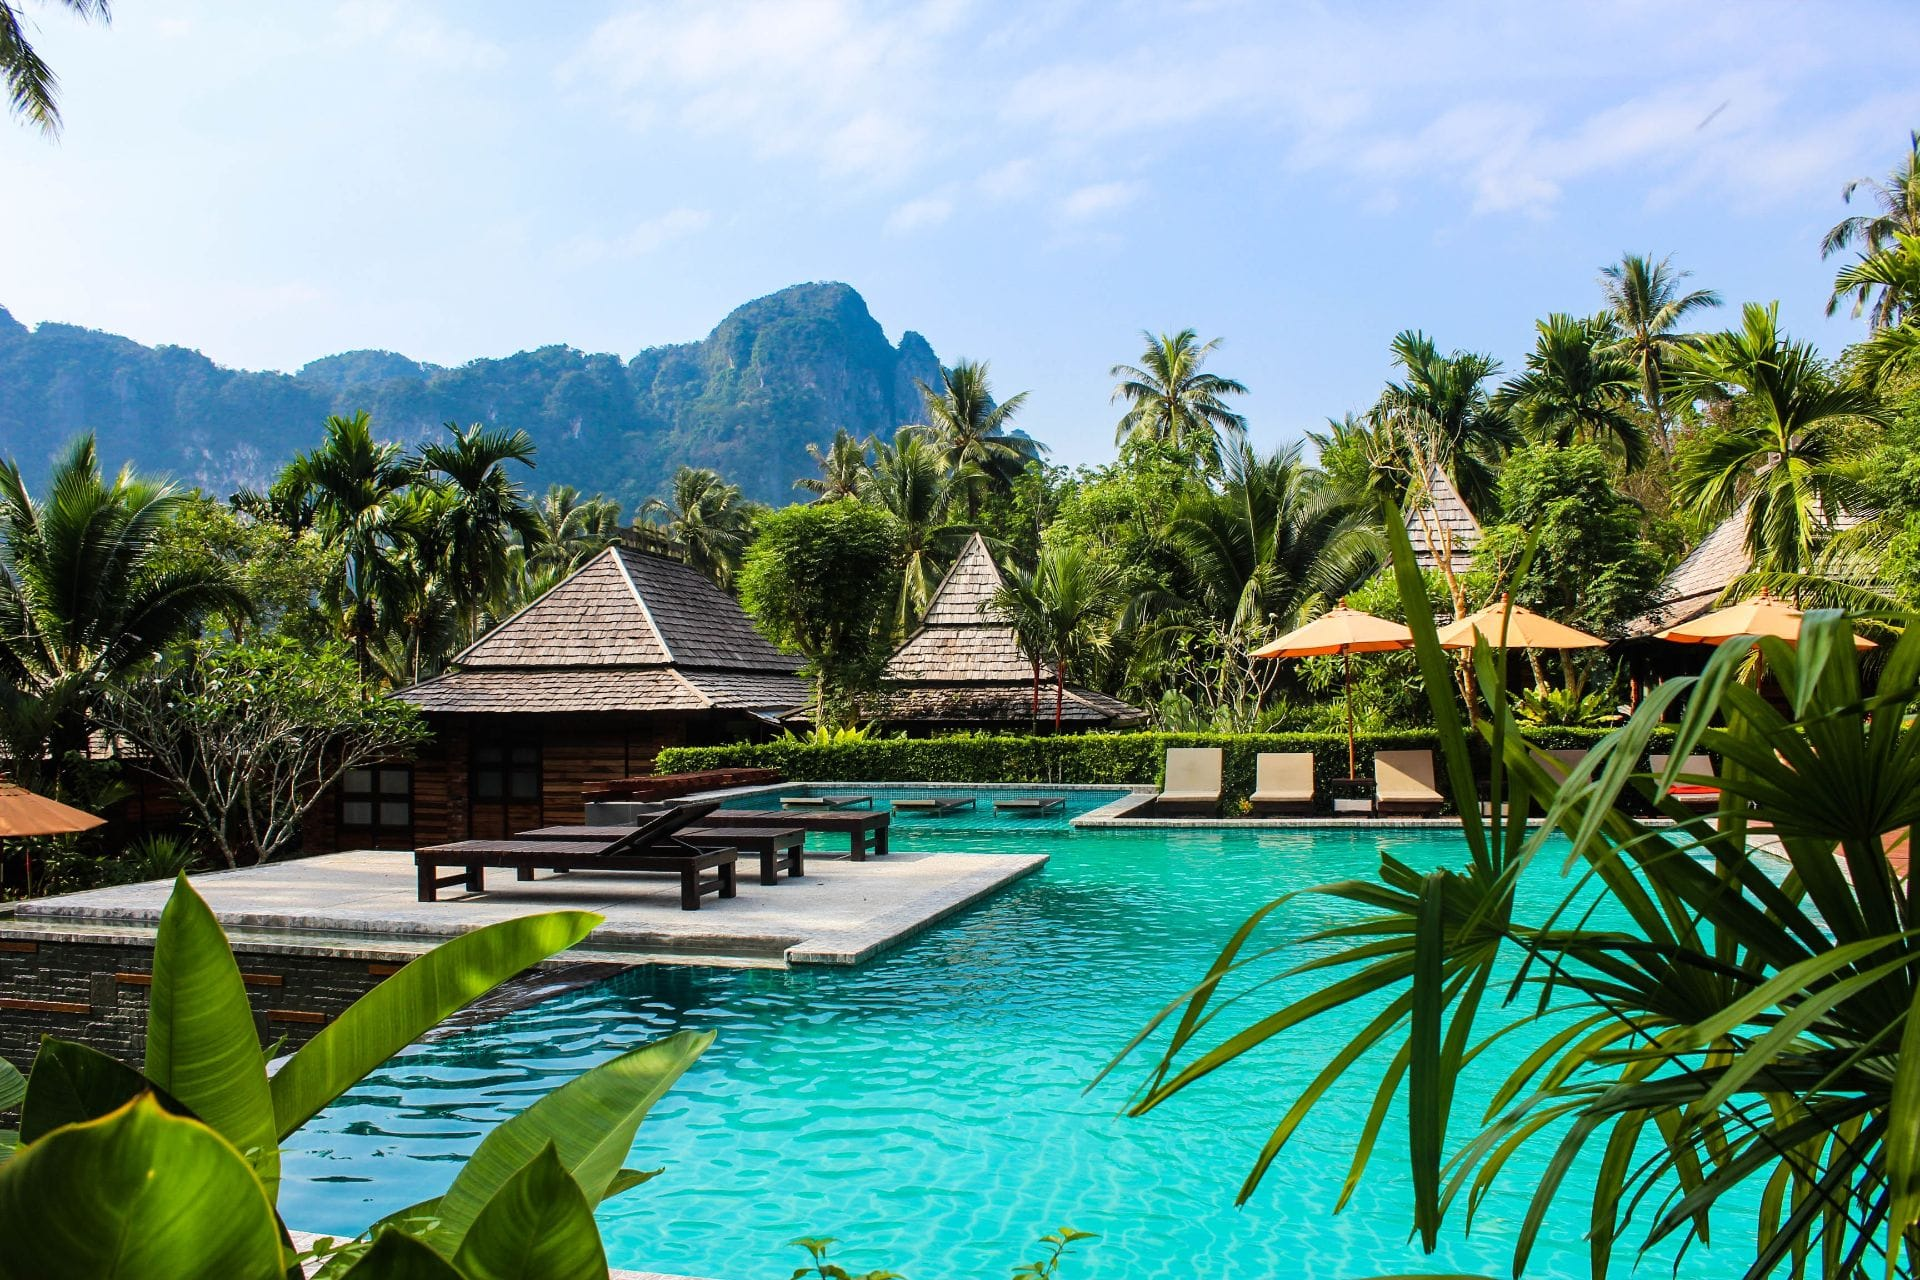 beautiful-exotic-hotel-and-resort-with-pool-palm-trees-and-mountains-in-hot-country-sustainable-travel-tips